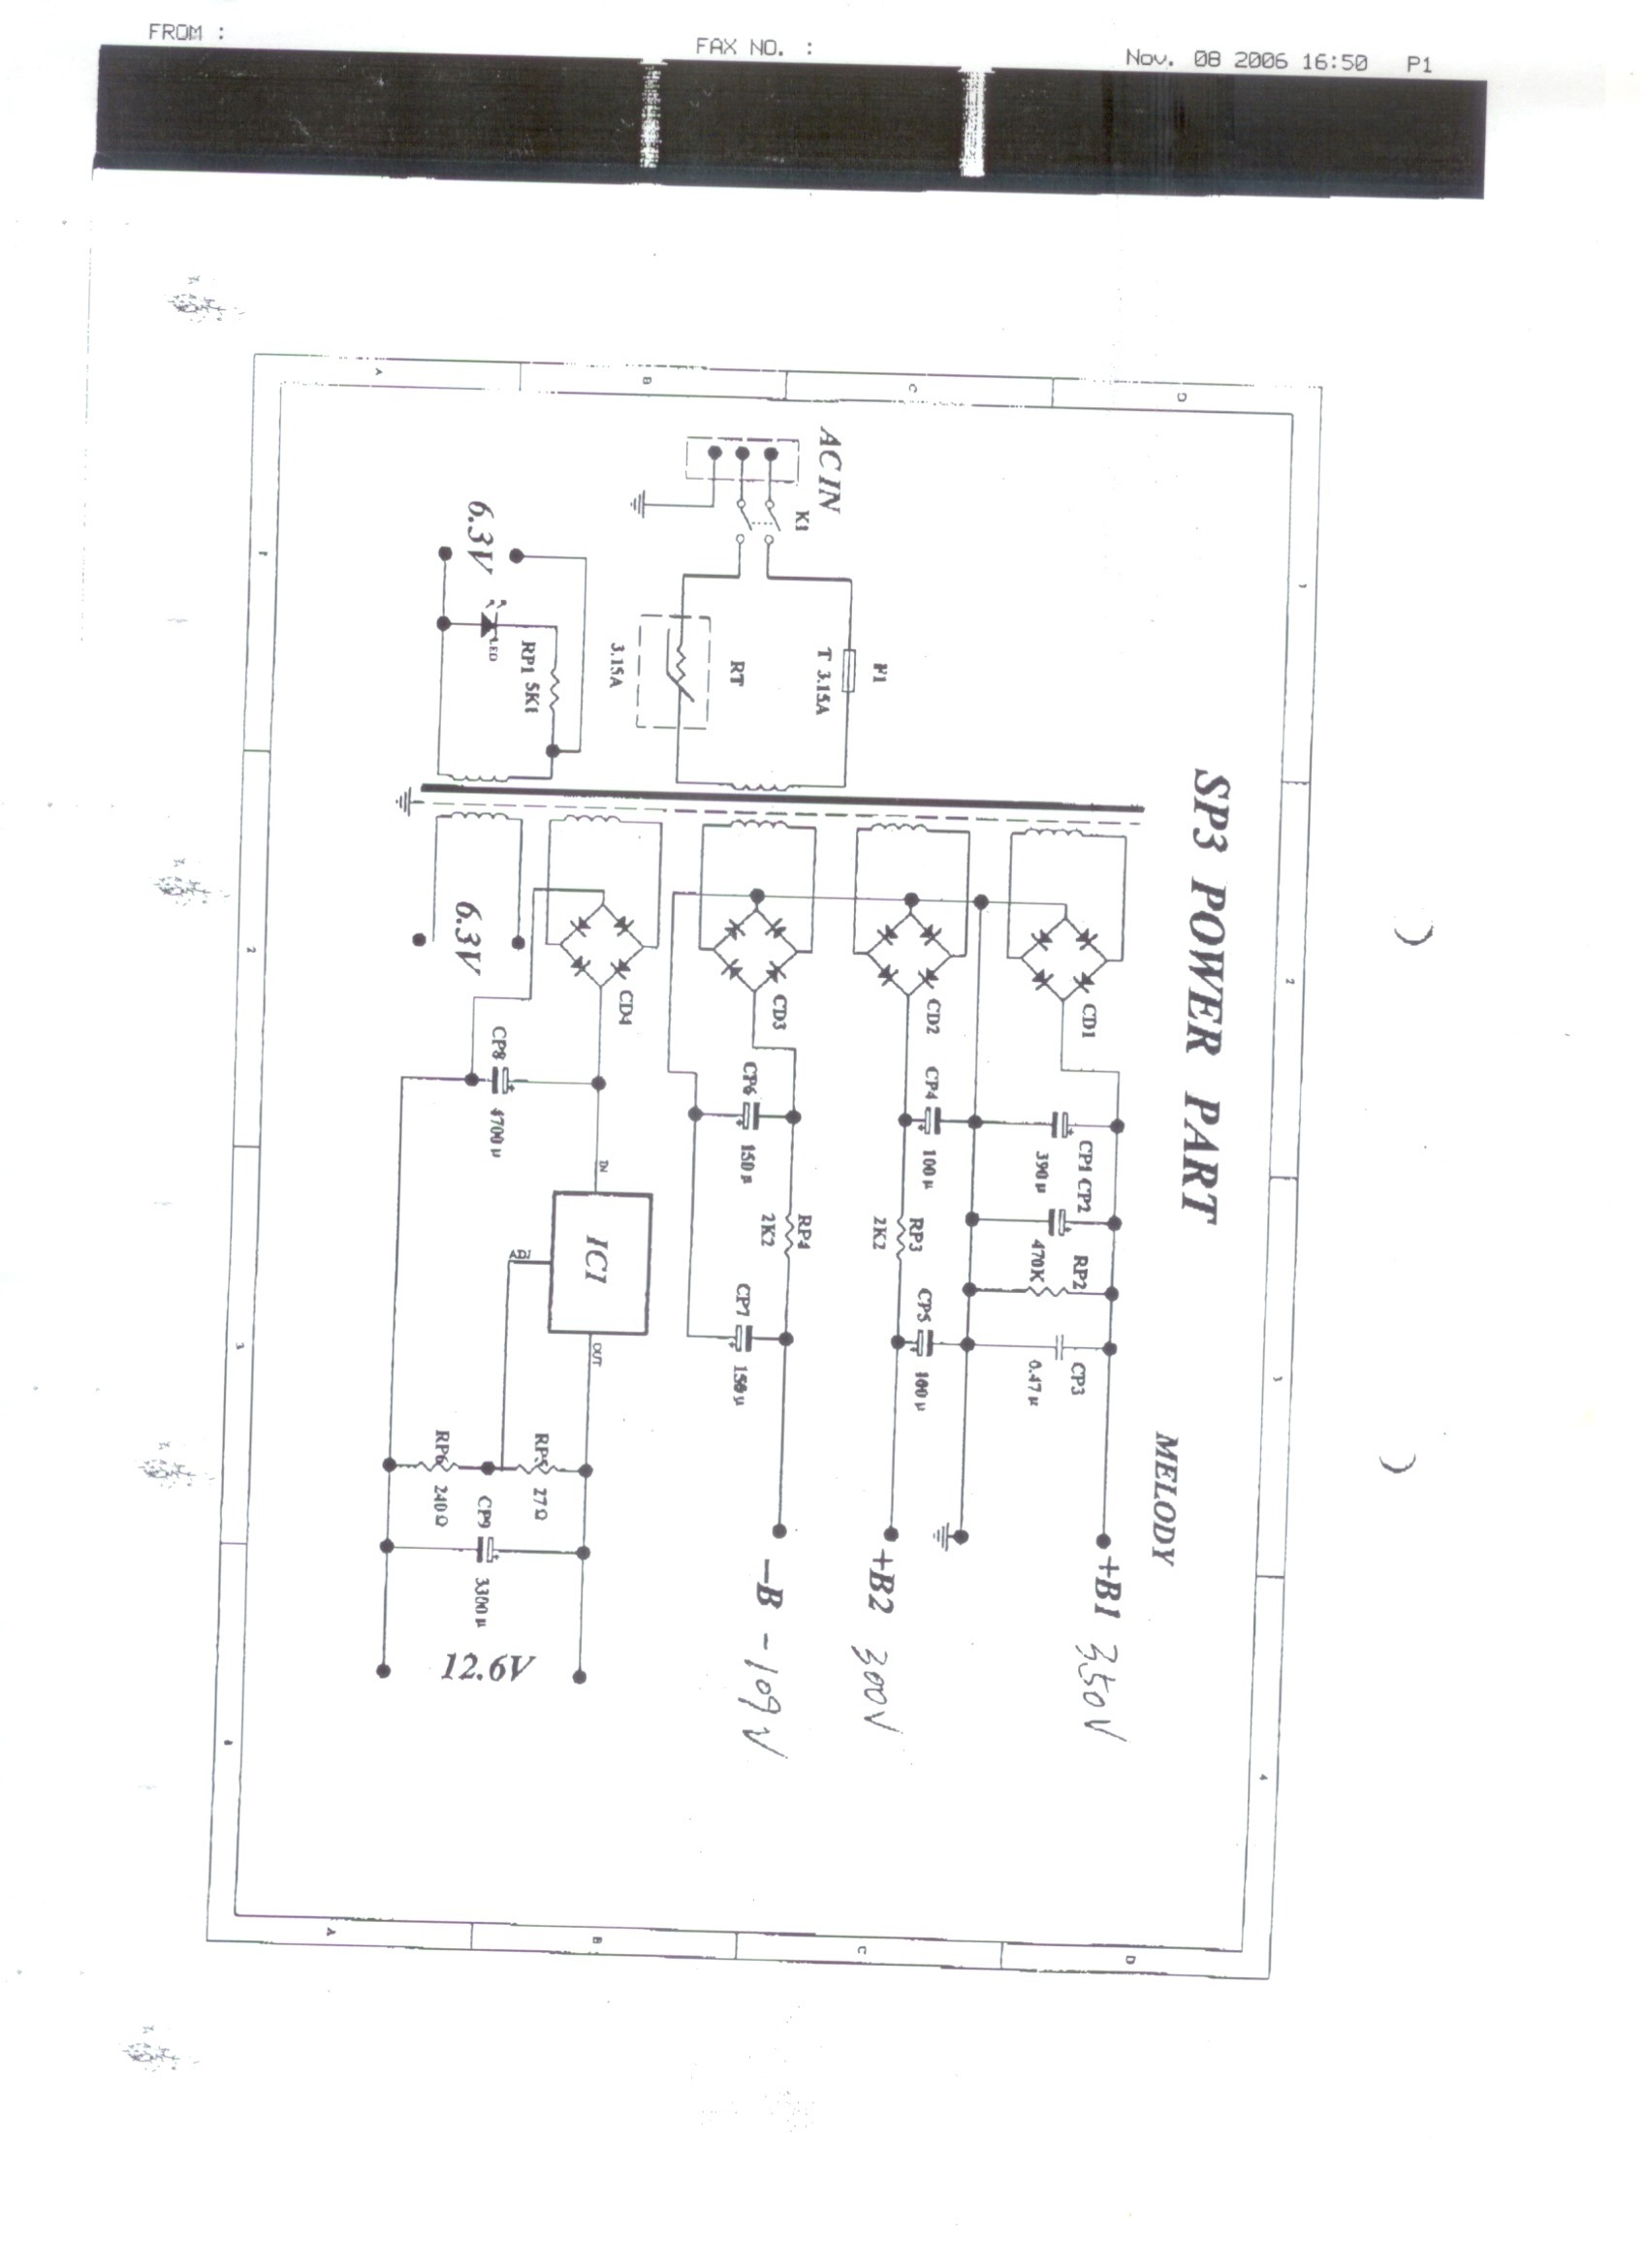 Onix Sp3 Valve Audio Amplifier Technical Specification Wikipedia For Power Supply Schematic Click